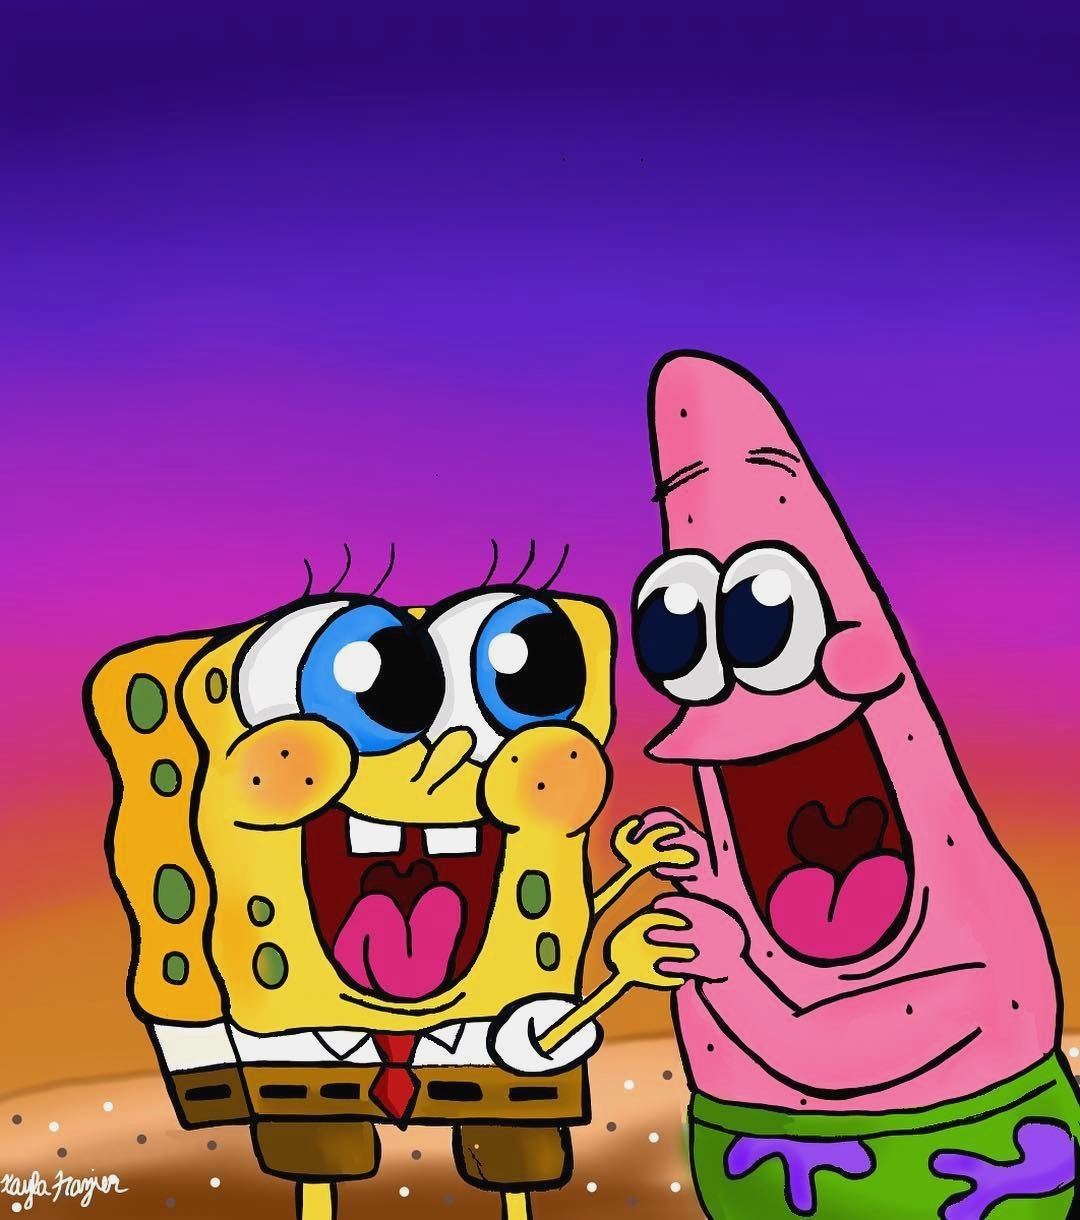 Spongebob Squarepants And Patrick Wallpaper Posted By Ethan Simpson